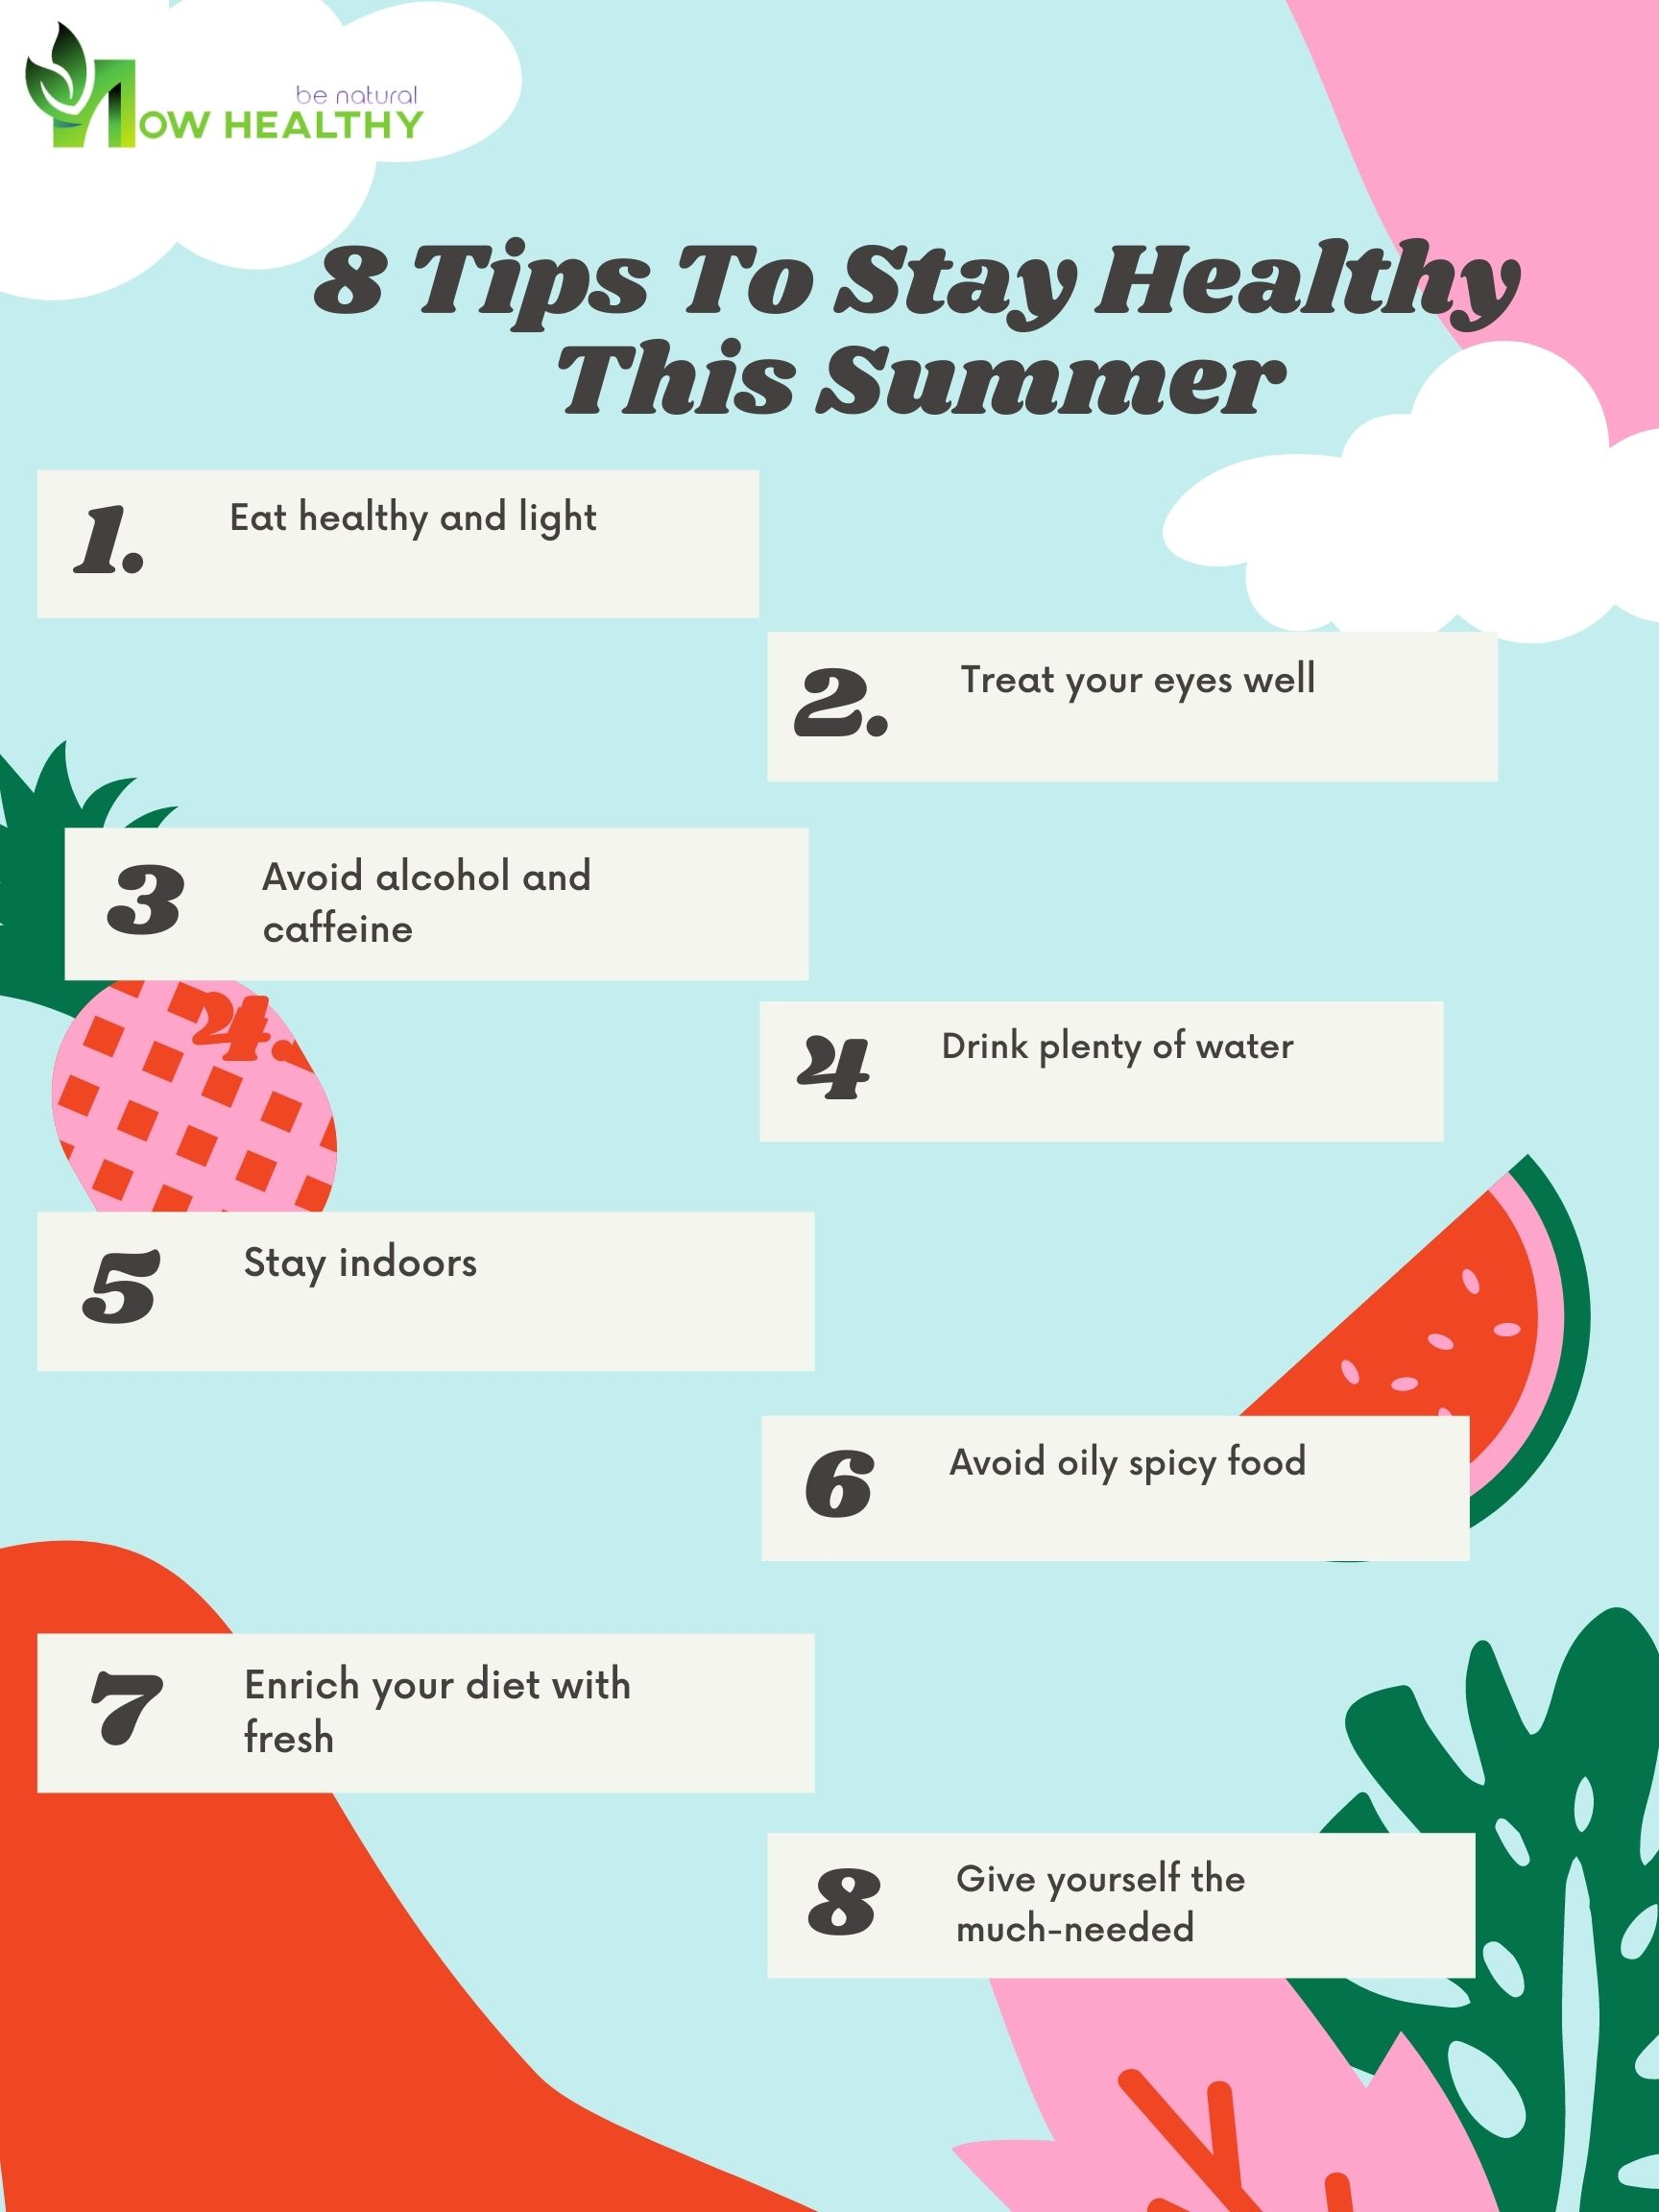 8 Tips To Stay Healthy This Summer